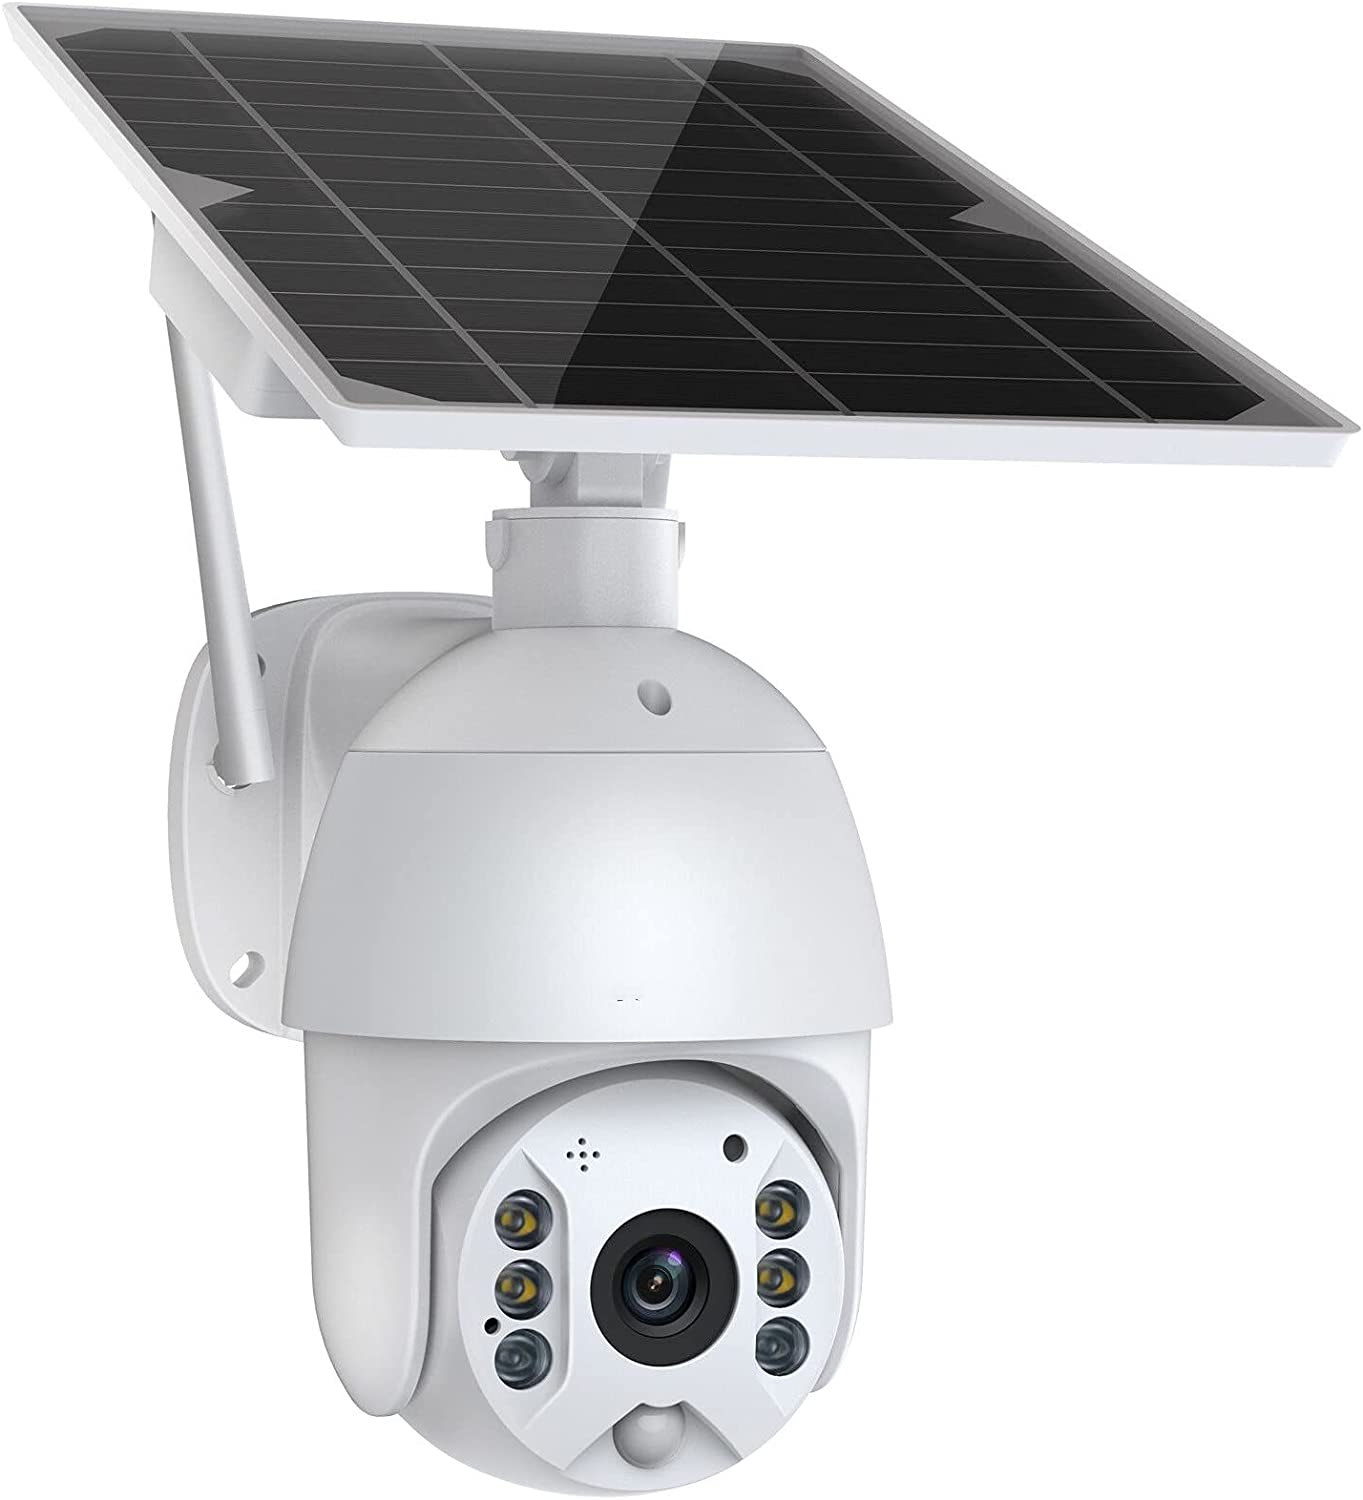 Security Camera Outdoor, 1080P Wireless WiFi PTZ Solar Security Camera with 2-Way Audio, Color Night Vision, IP65 Waterproof,Motion Detection